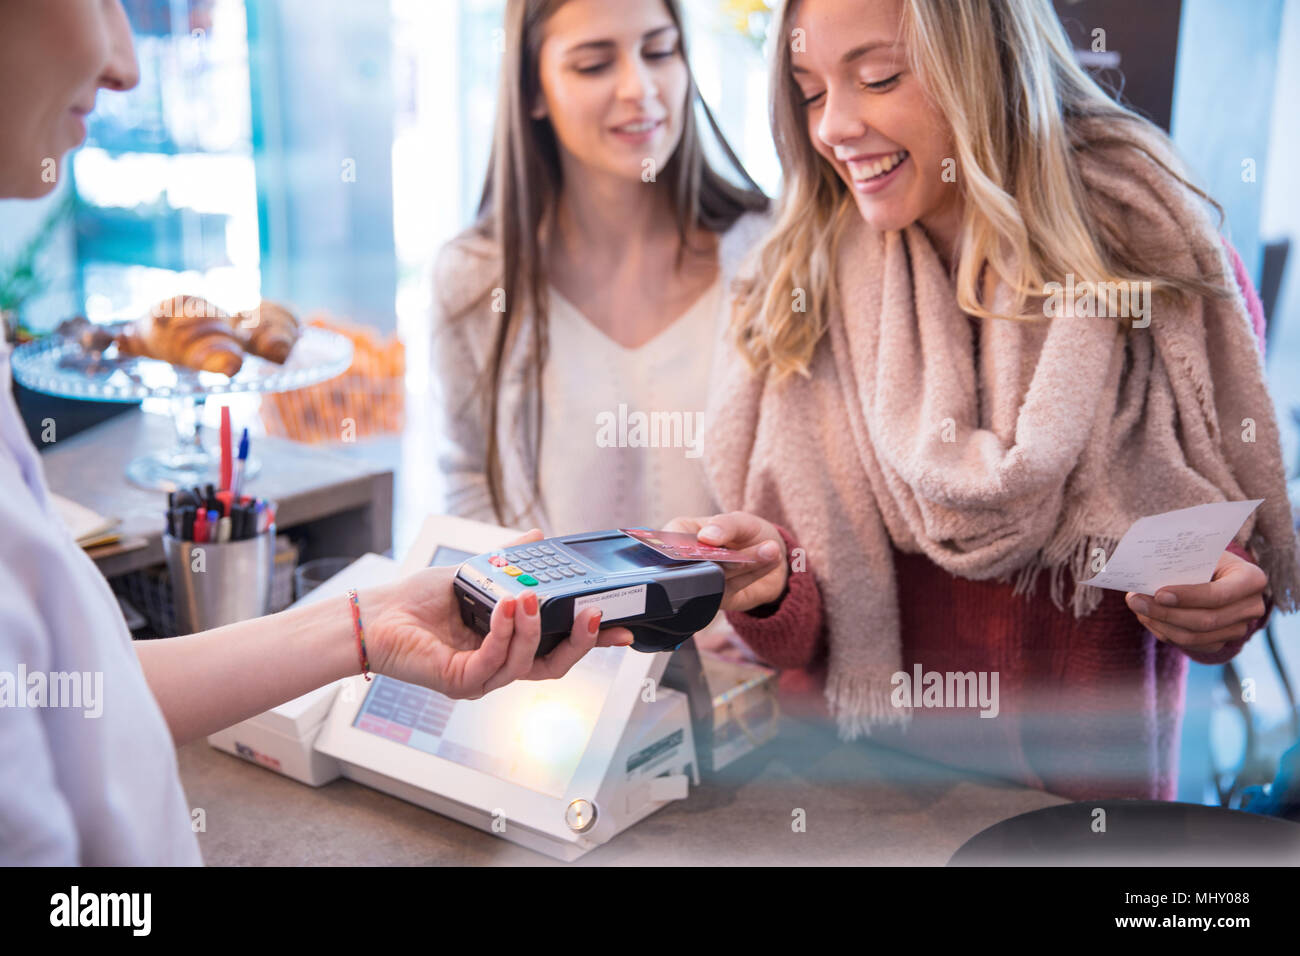 Female friends standing at counter in cafe, paying using credit card - Stock Image